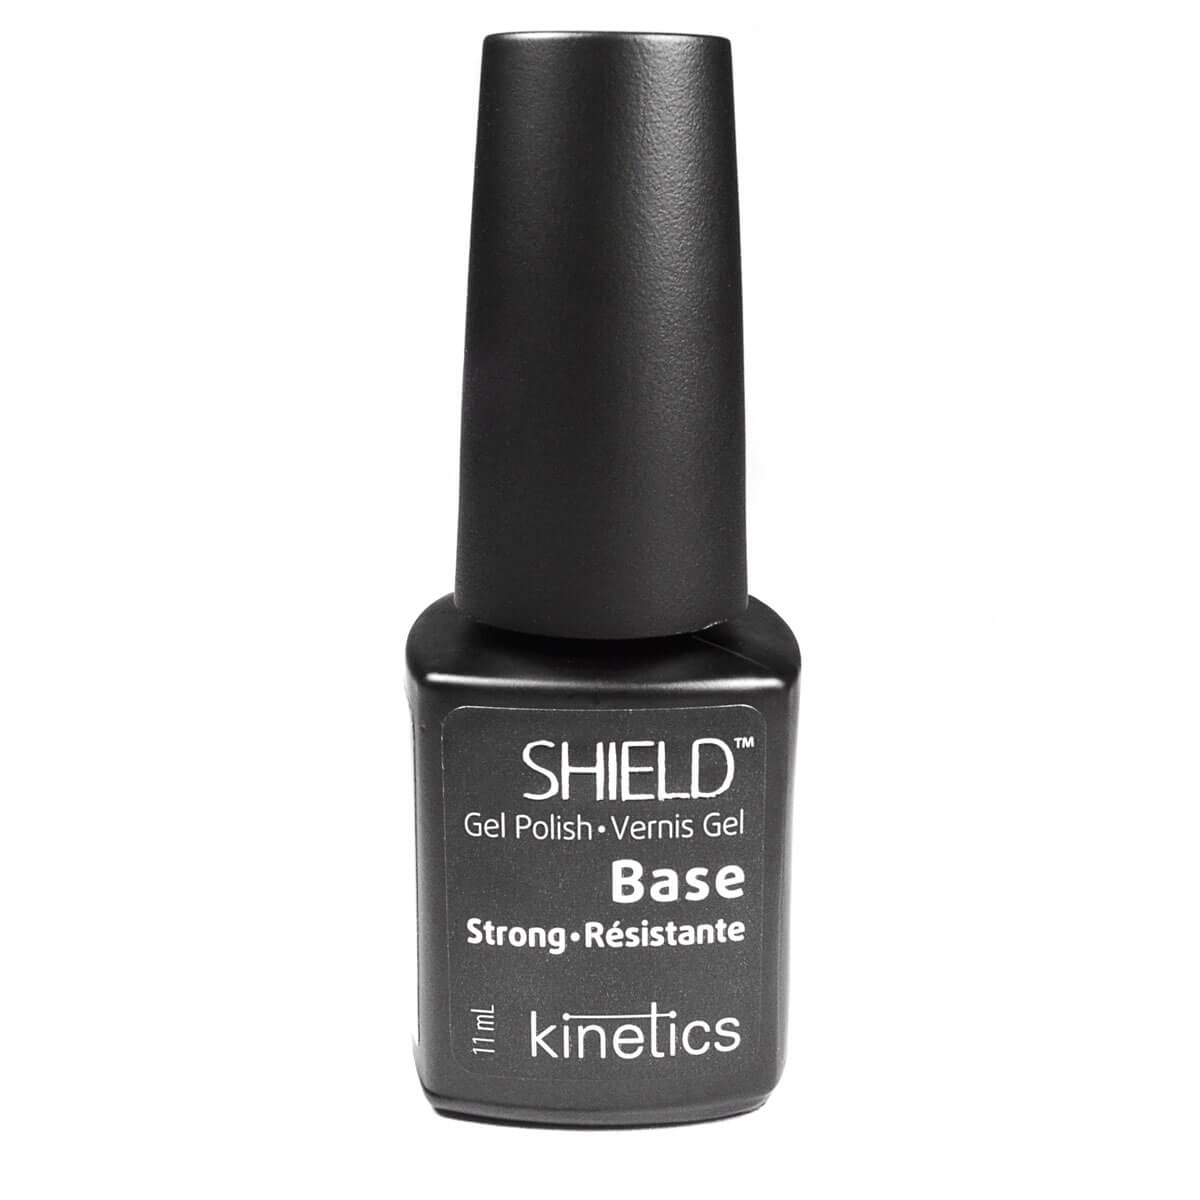 Shield Gel Polish Strong Base Kinetics 11ml